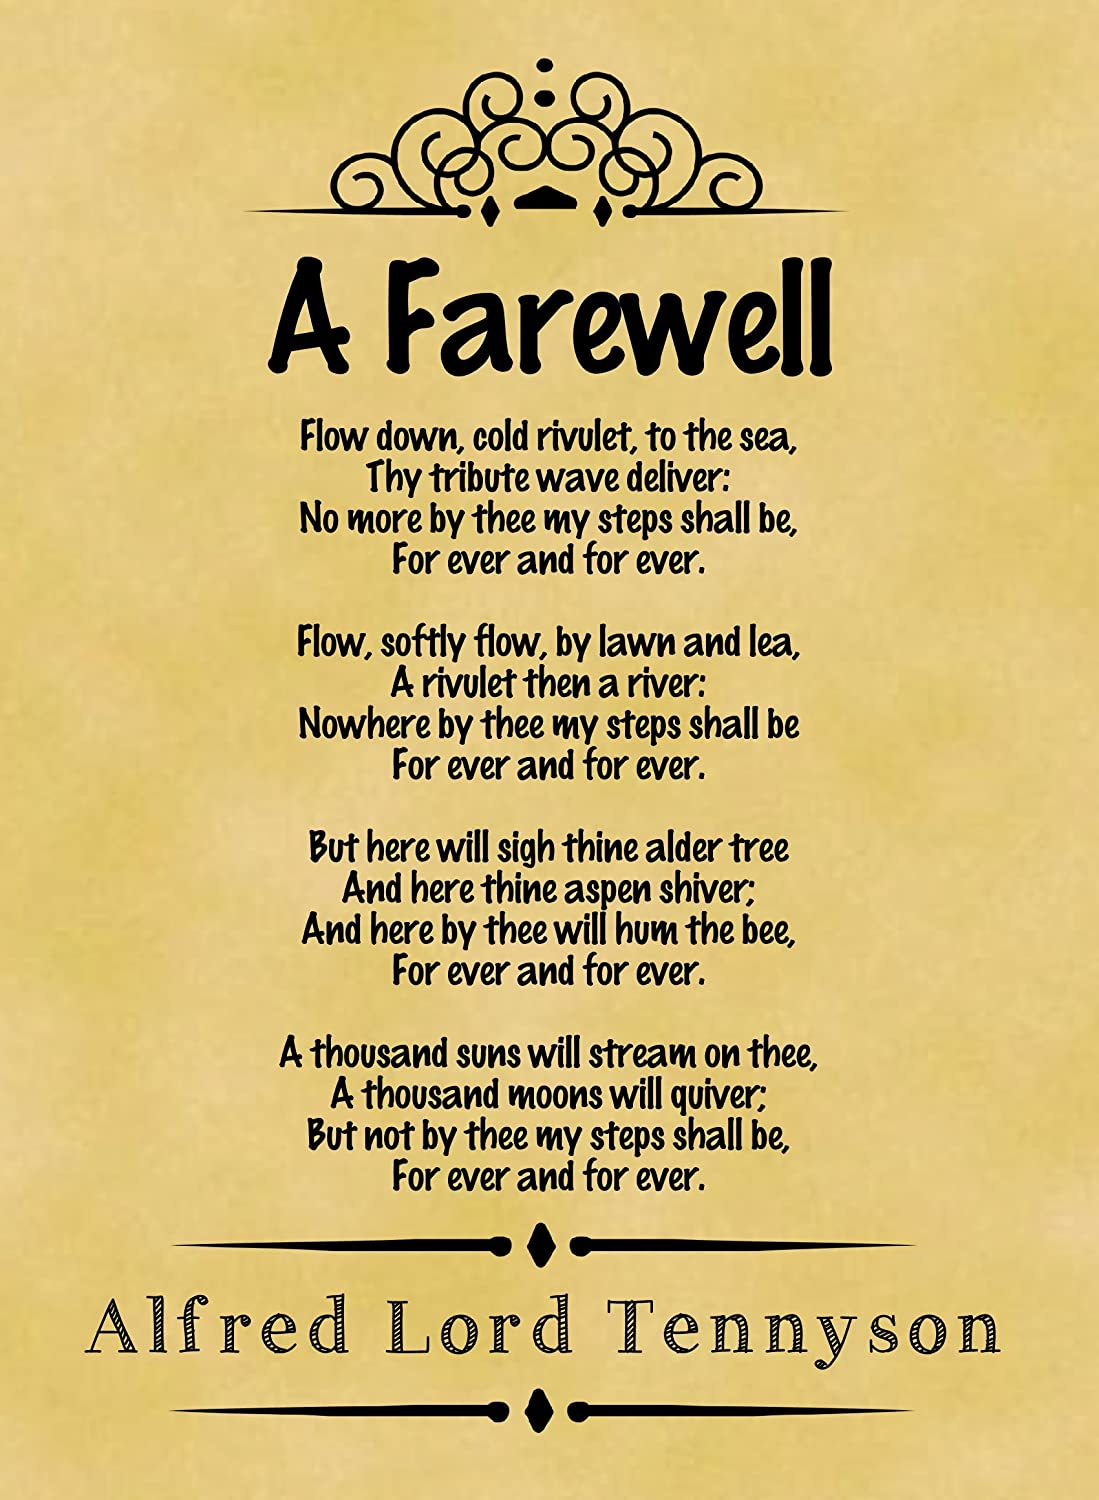 amazon com parchment style card greetings card cm x cm amazon com parchment style card greetings card 14cm x 10cm classic poem alfred lord tennyson a farewell home kitchen